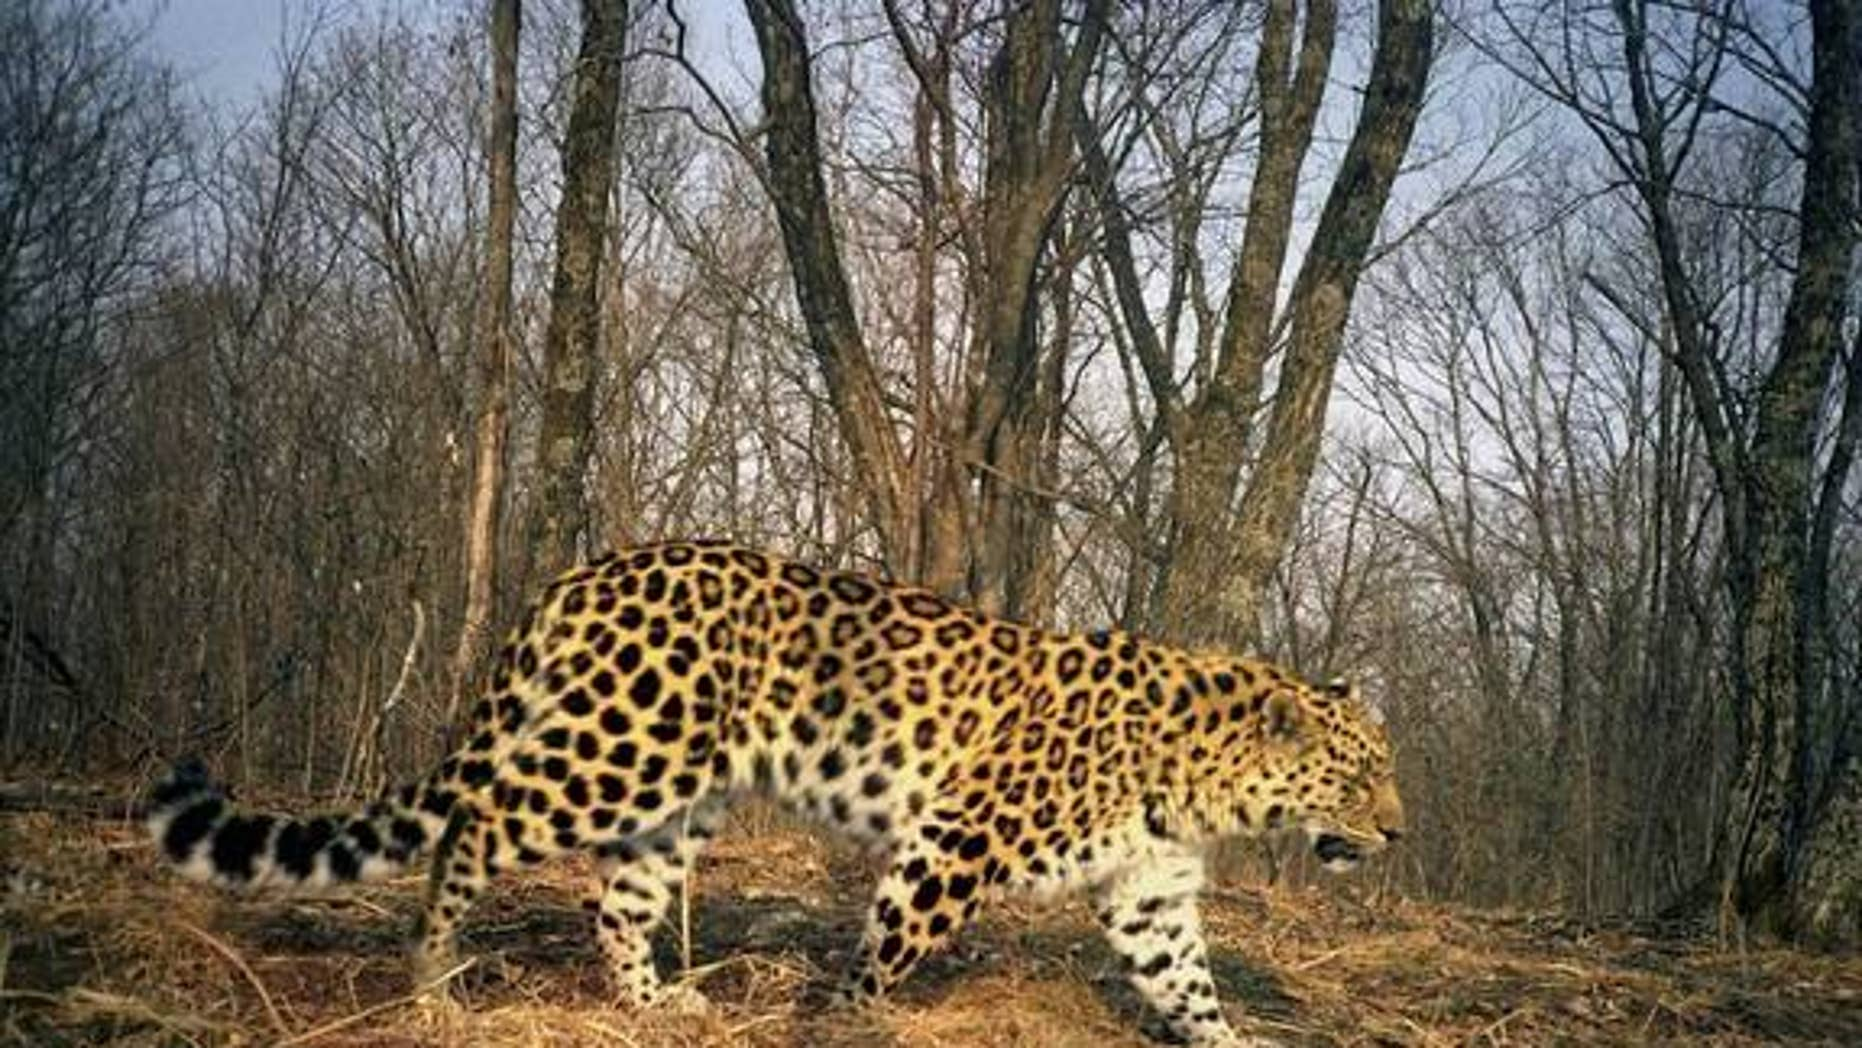 An Amur leopard is caught on camera at Land of the Leopard National Park in Russia.